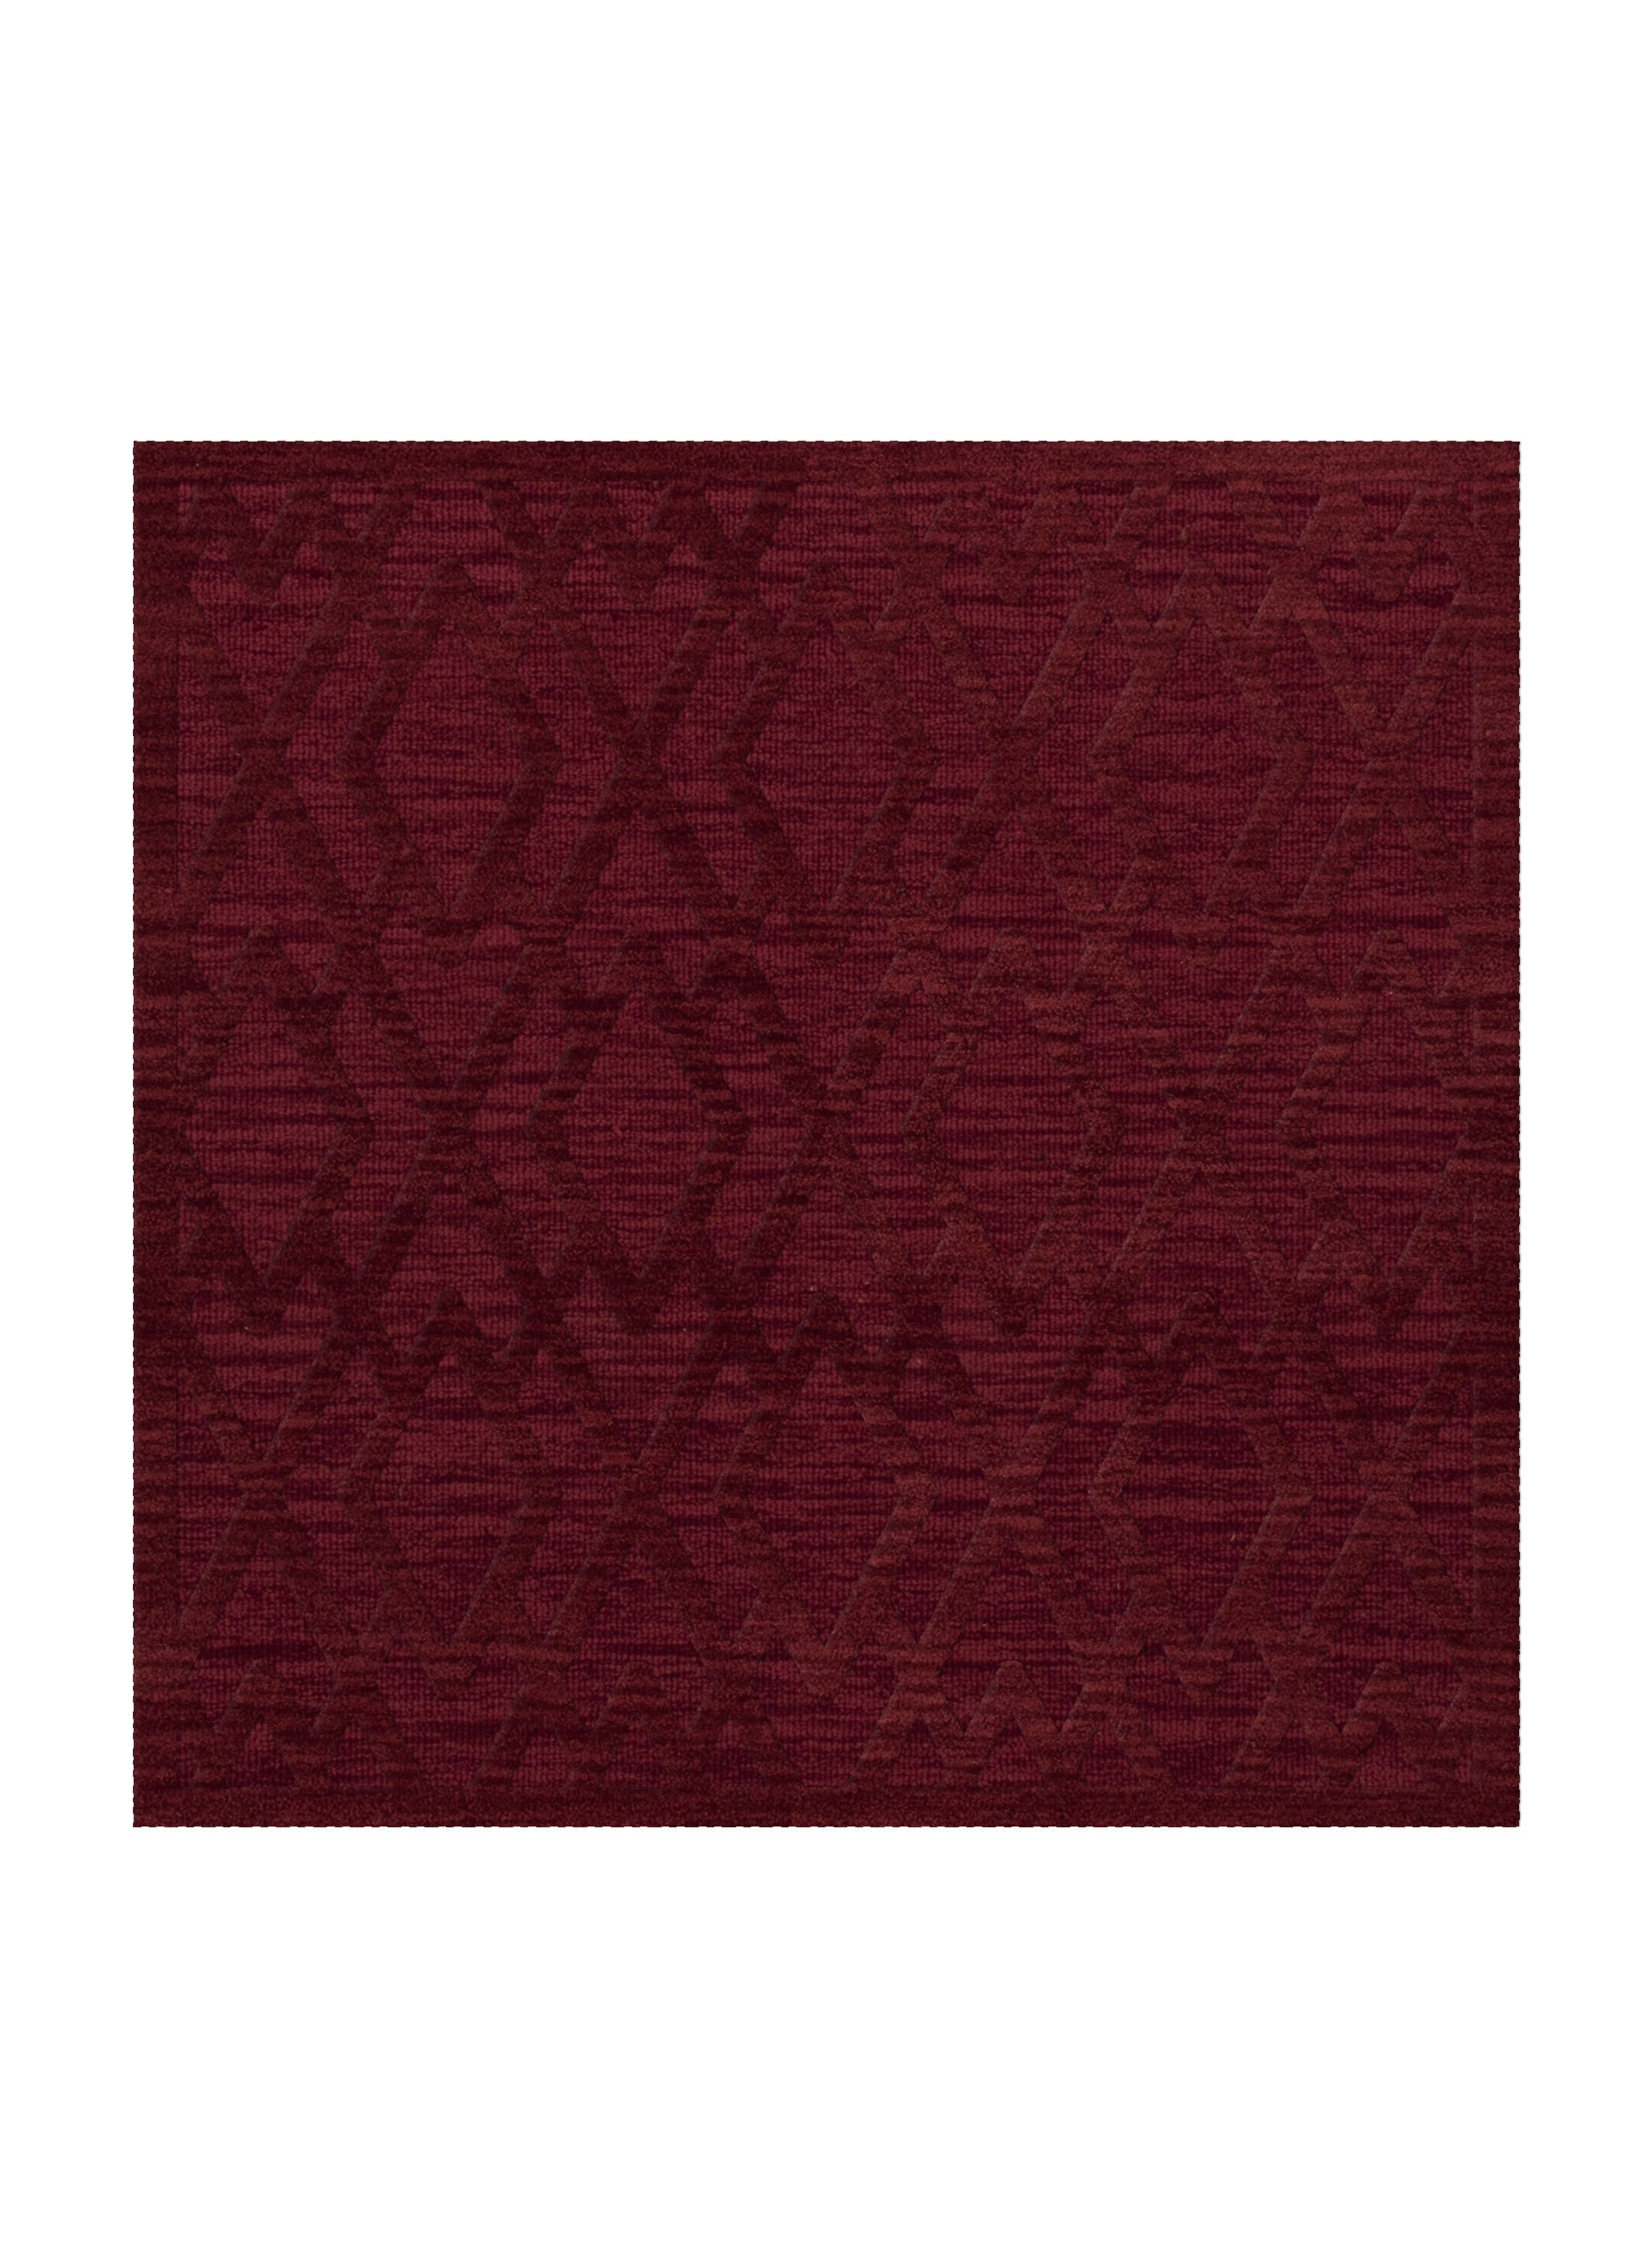 Dover Tufted Wool Rich Red Area Rug Rug Size: Square 12'